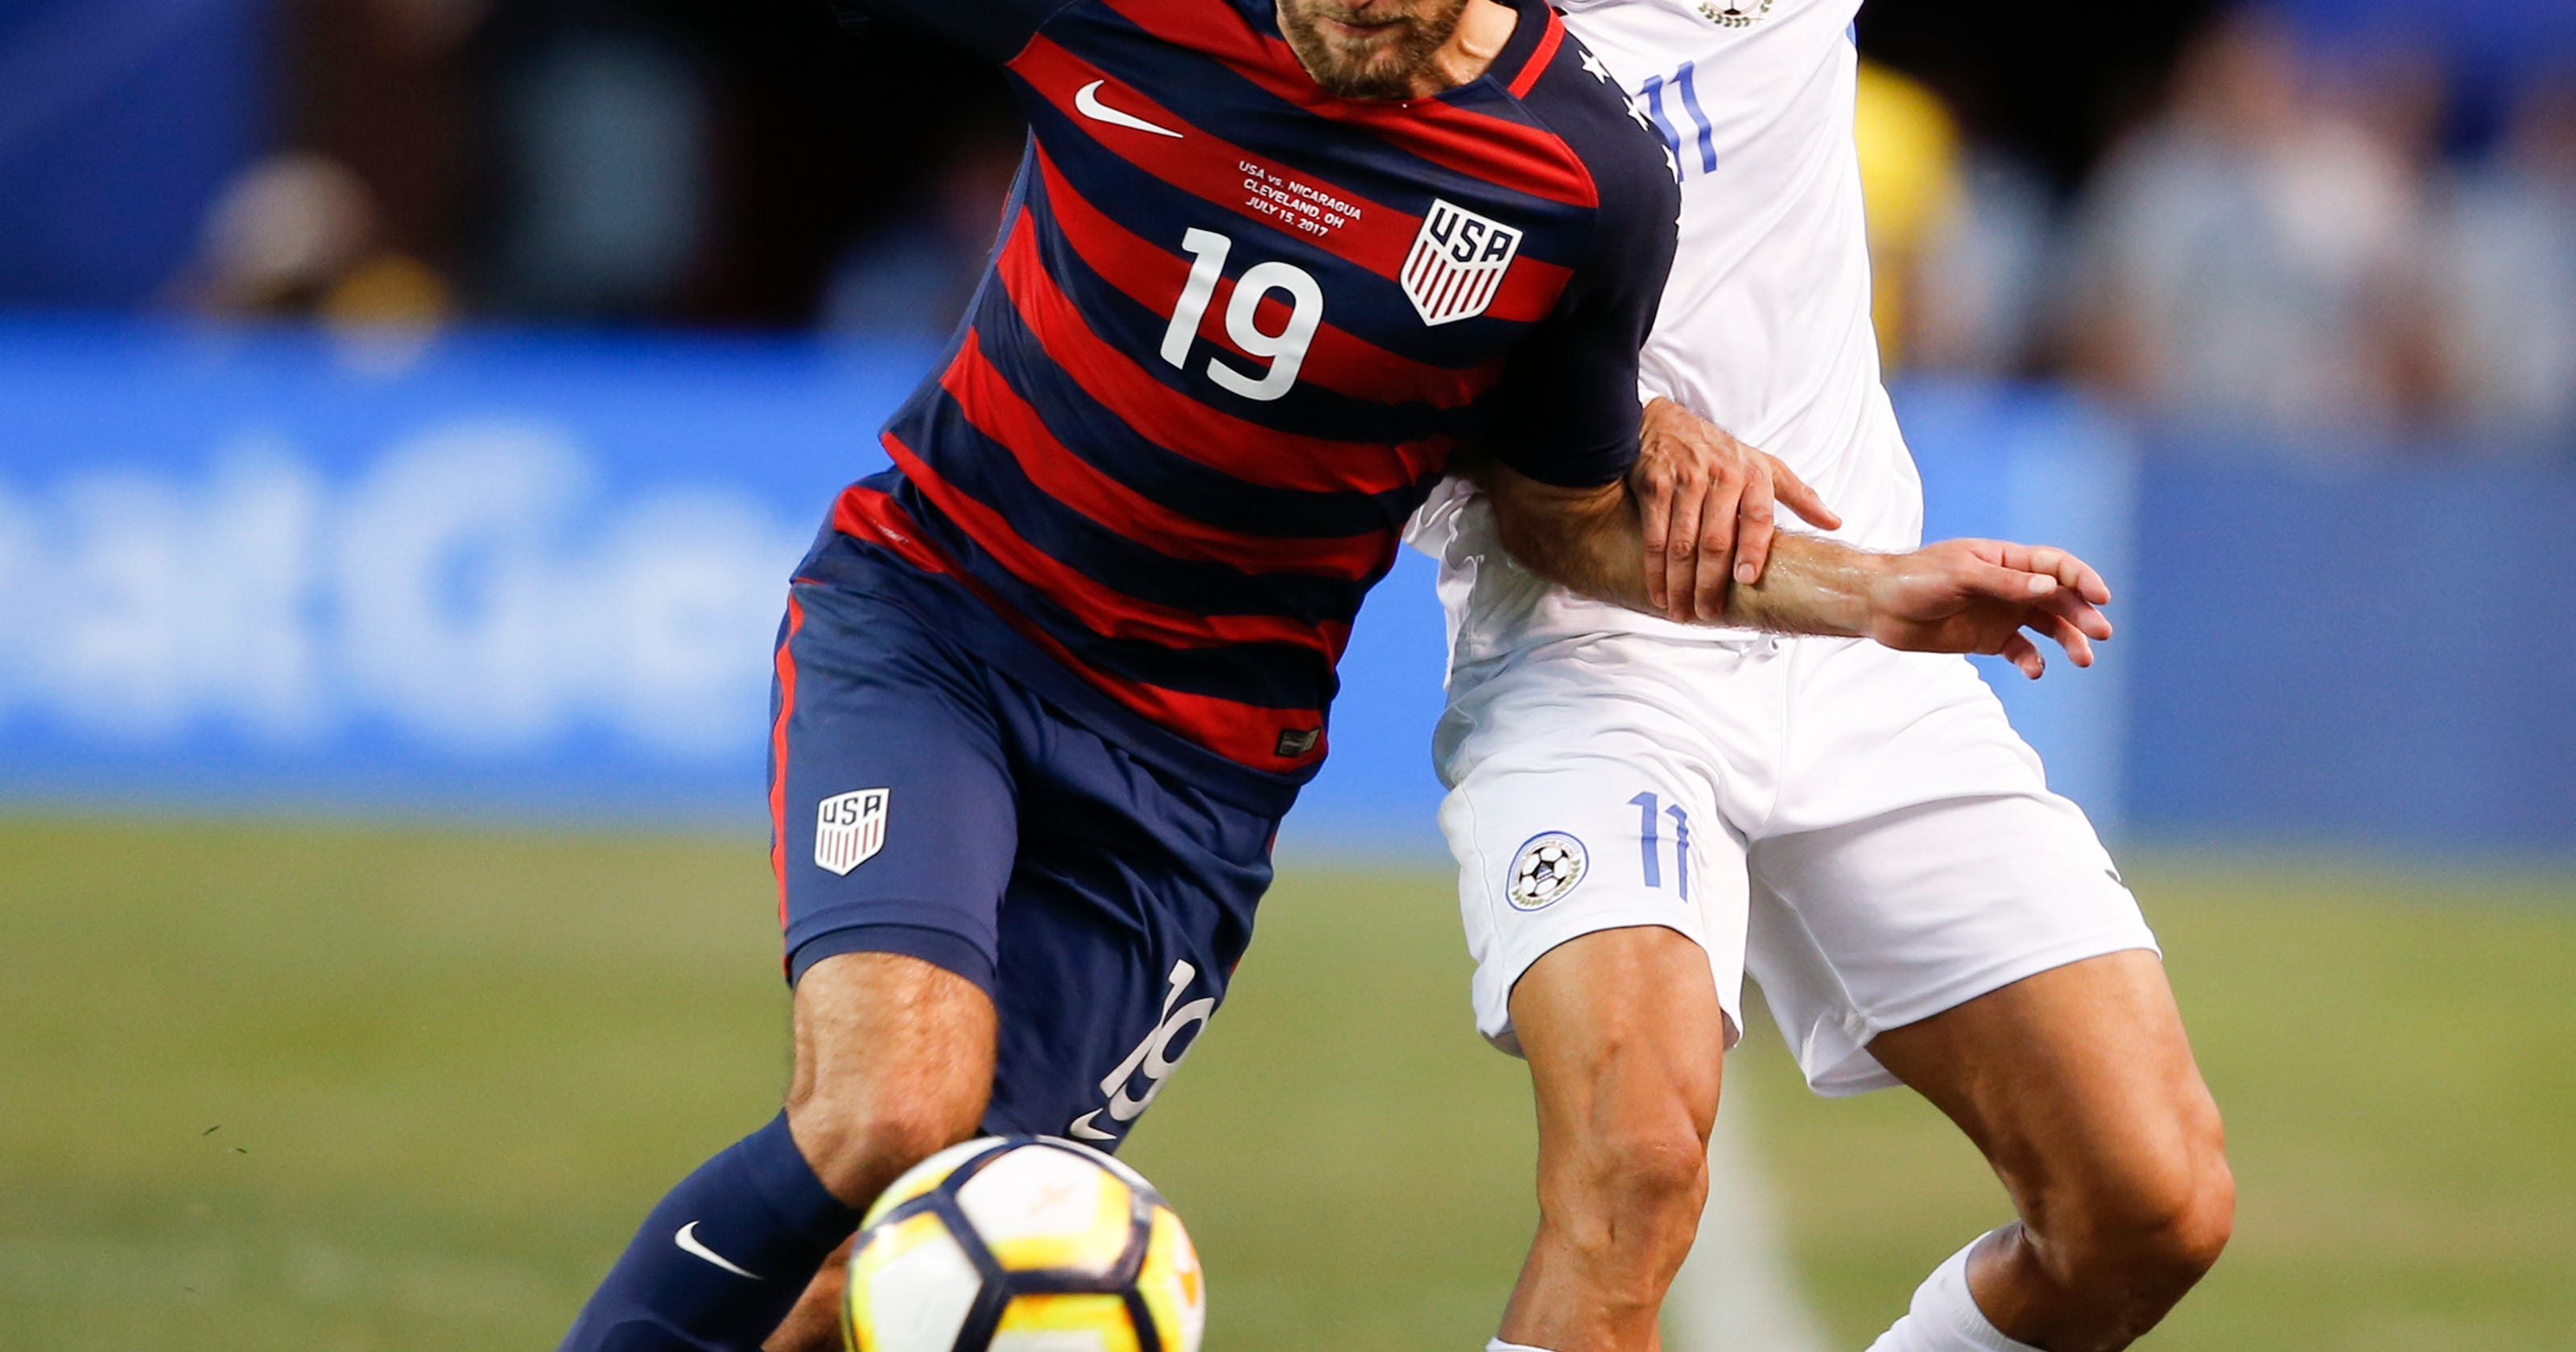 951967206c2 Miazga s late goal gives US 1st place in Gold Cup group